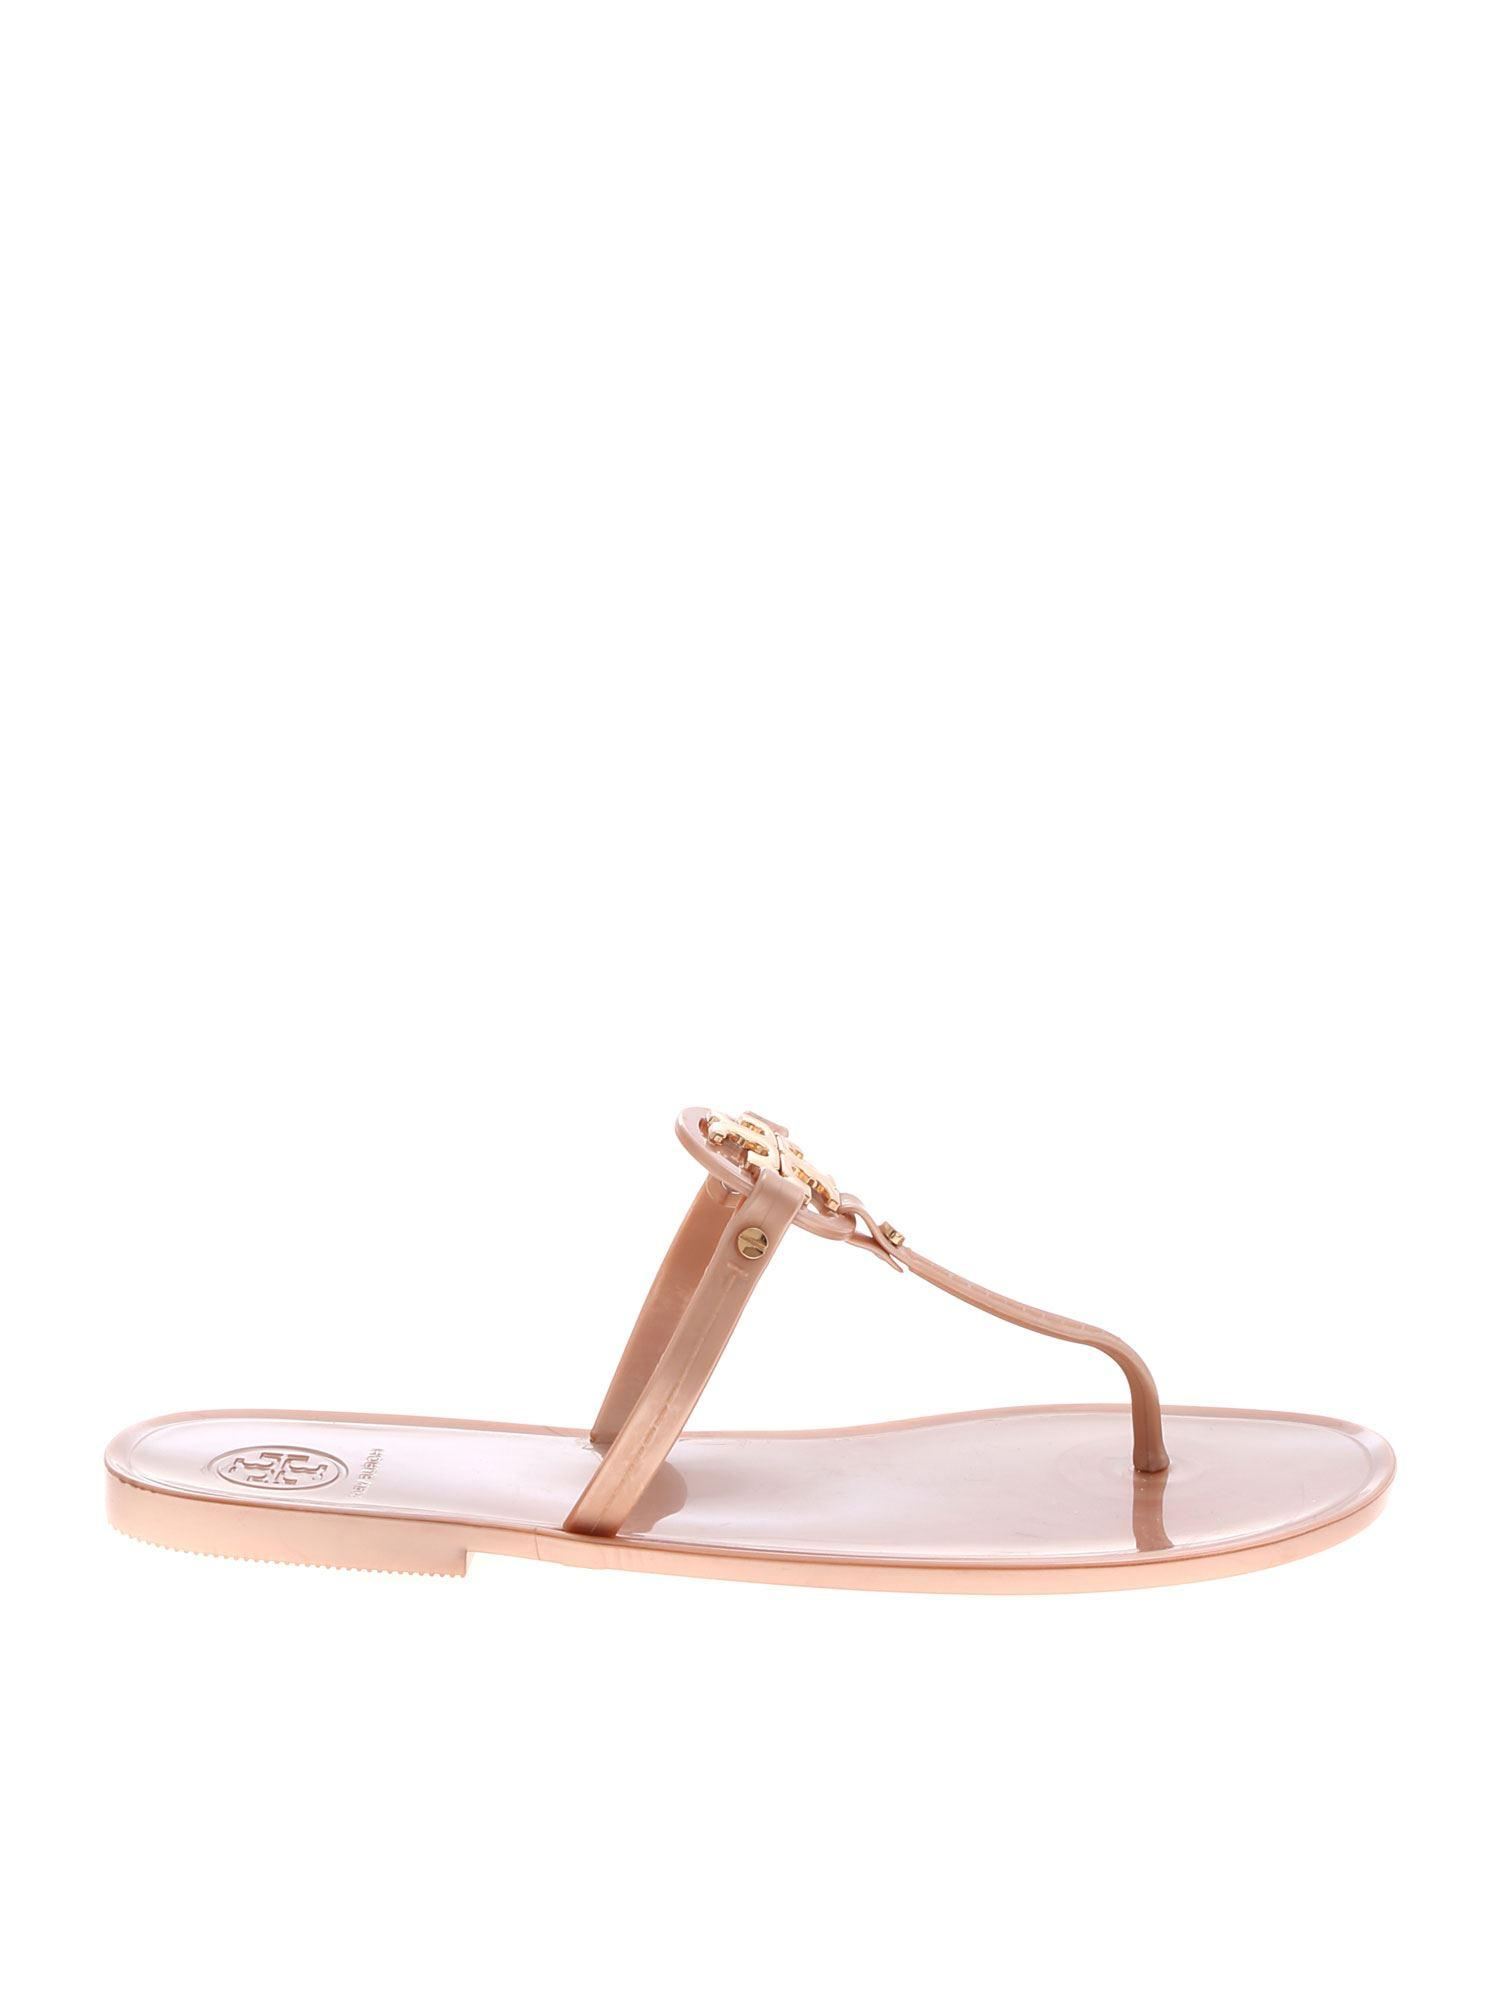 4bb4143531df Lyst - Tory Burch Mini Miller Thong Sandals In Pink in Pink